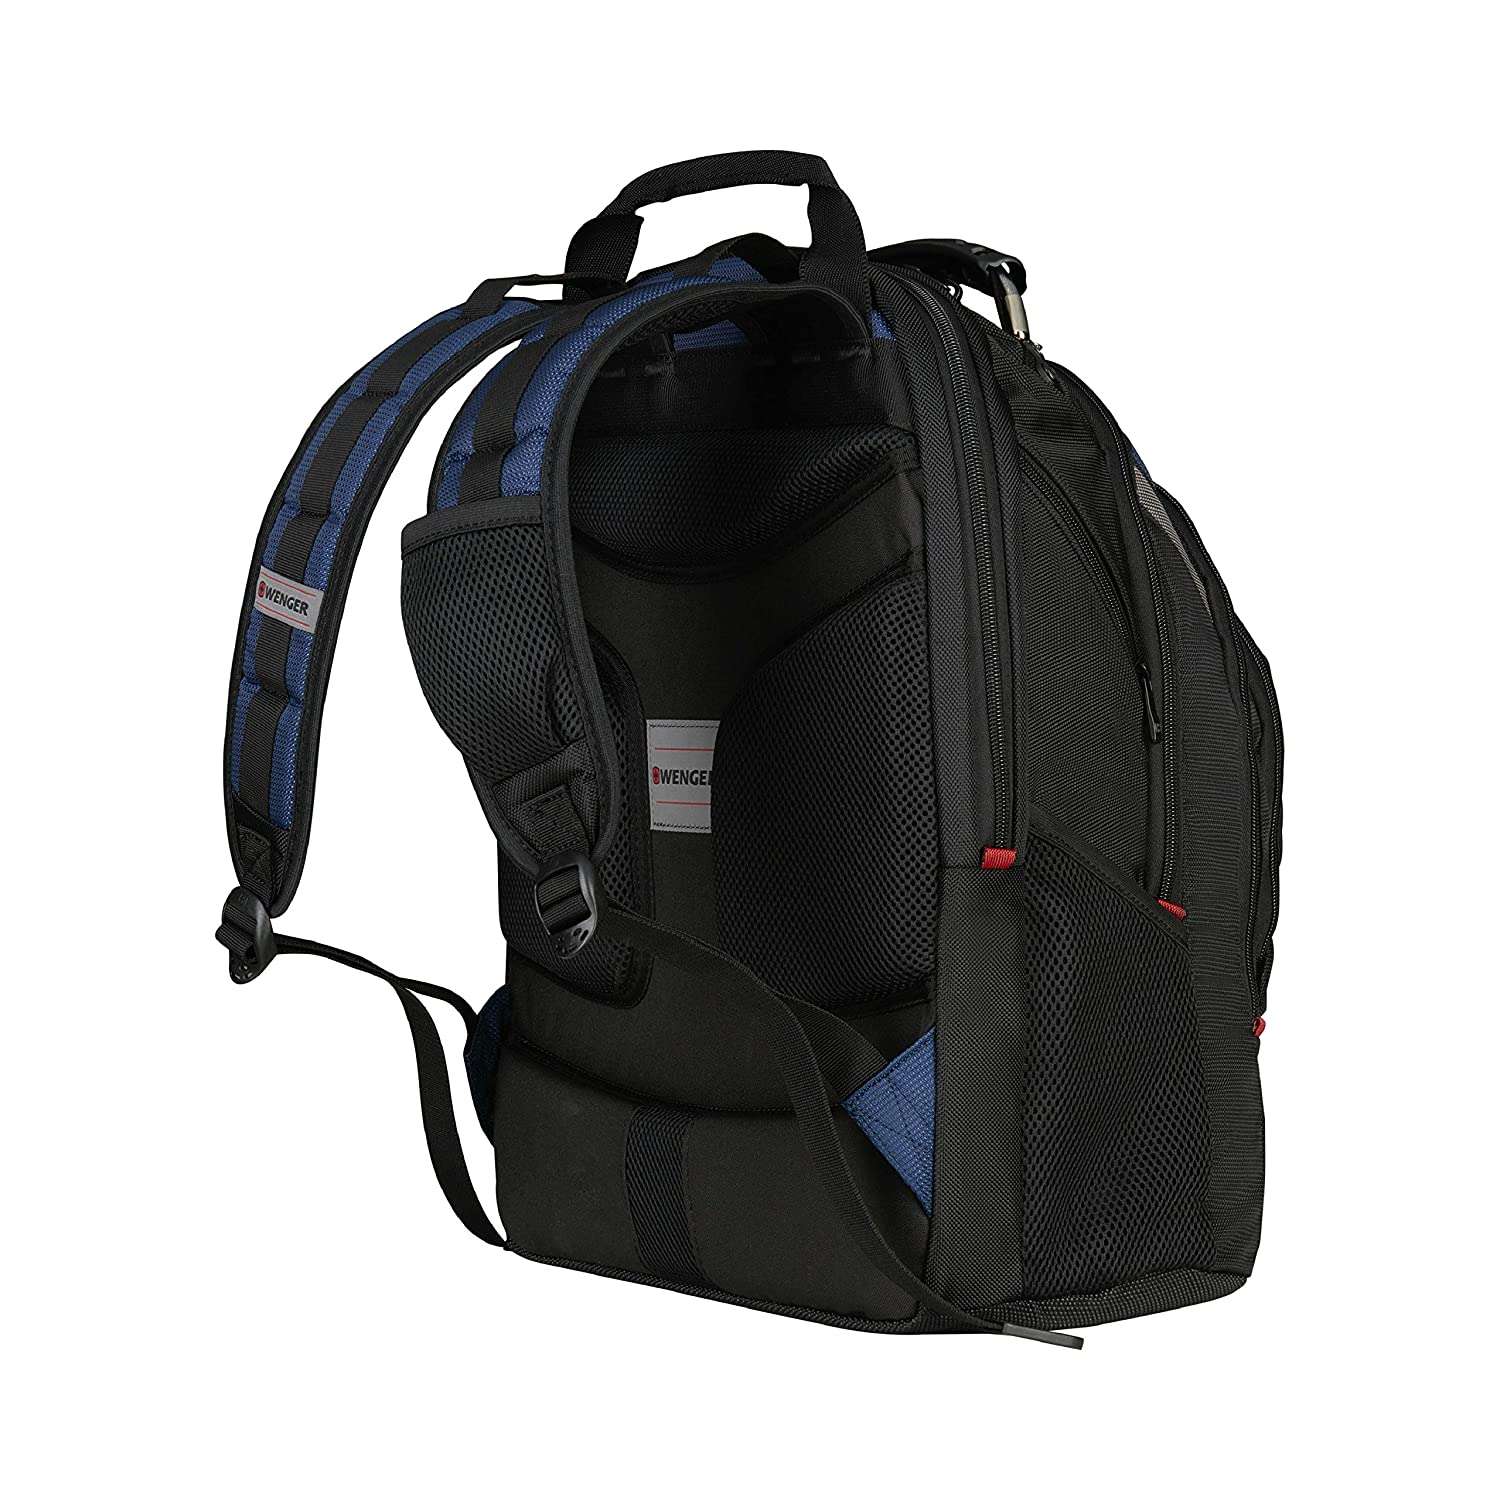 Swissgear Laptop Backpack 17 Inch